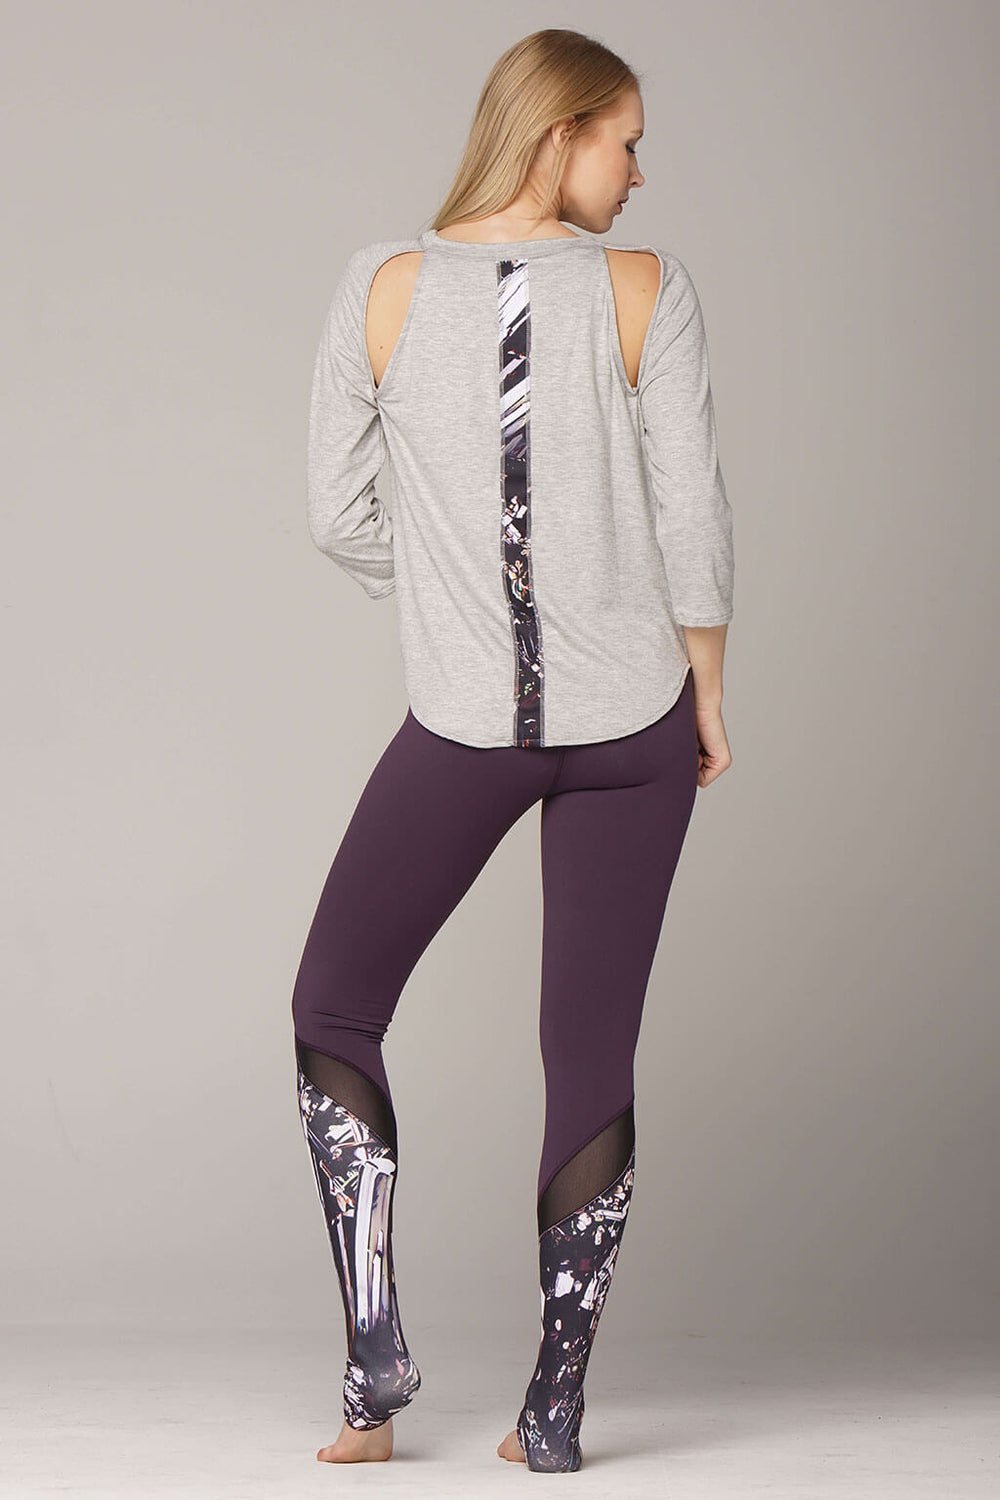 Back view of epidote B-line raglan in grey and matching leggings with art stripe down back and